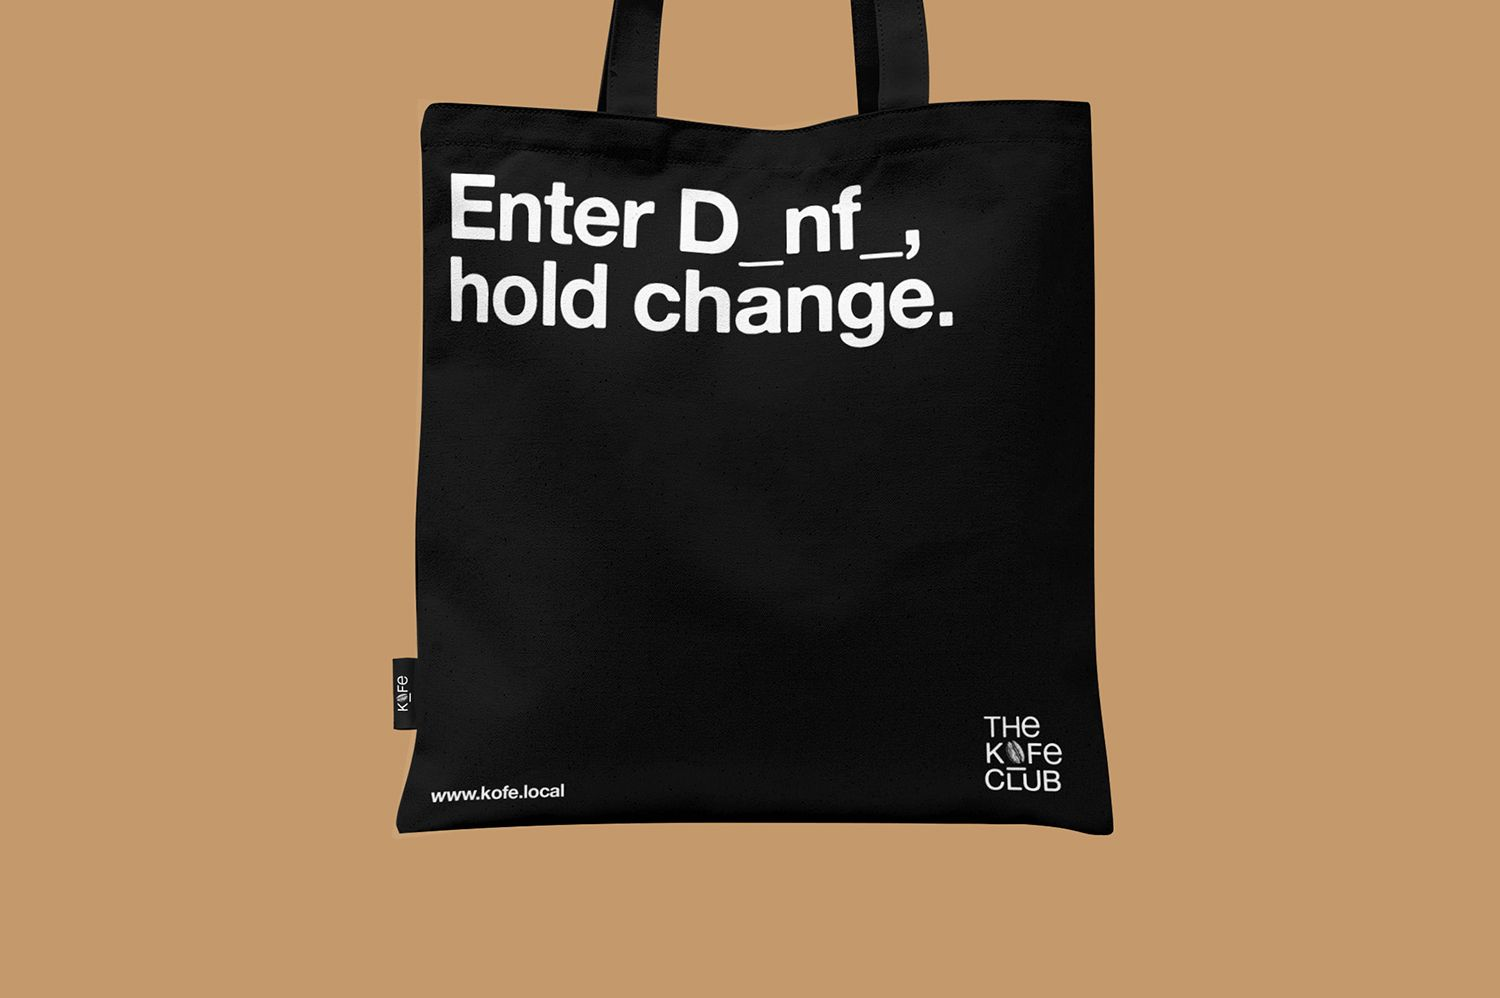 Kofe Club Tote Club - Enter Danfo, hold change